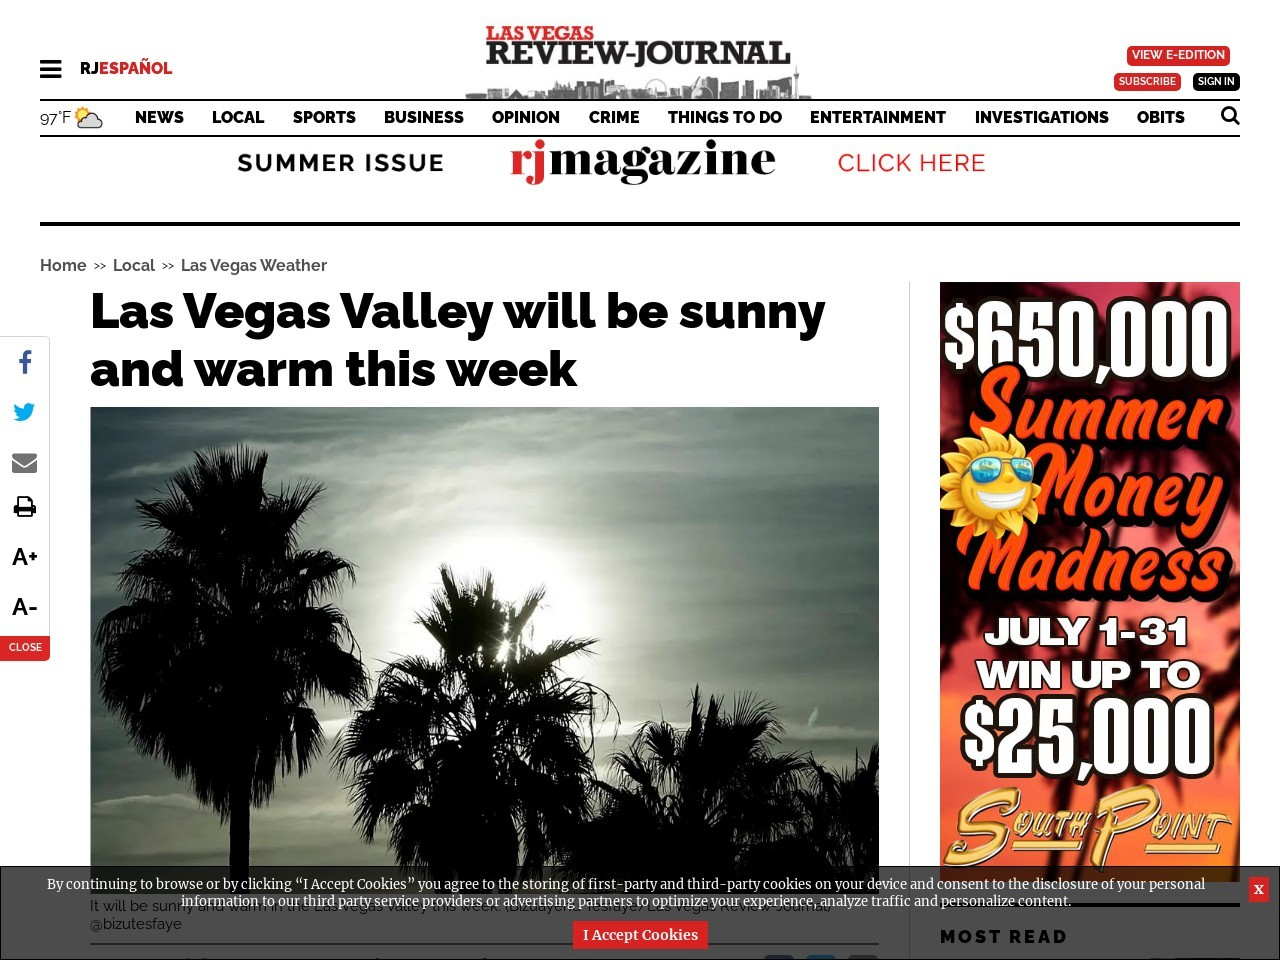 Las Vegas Valley will be sunny and warm this week